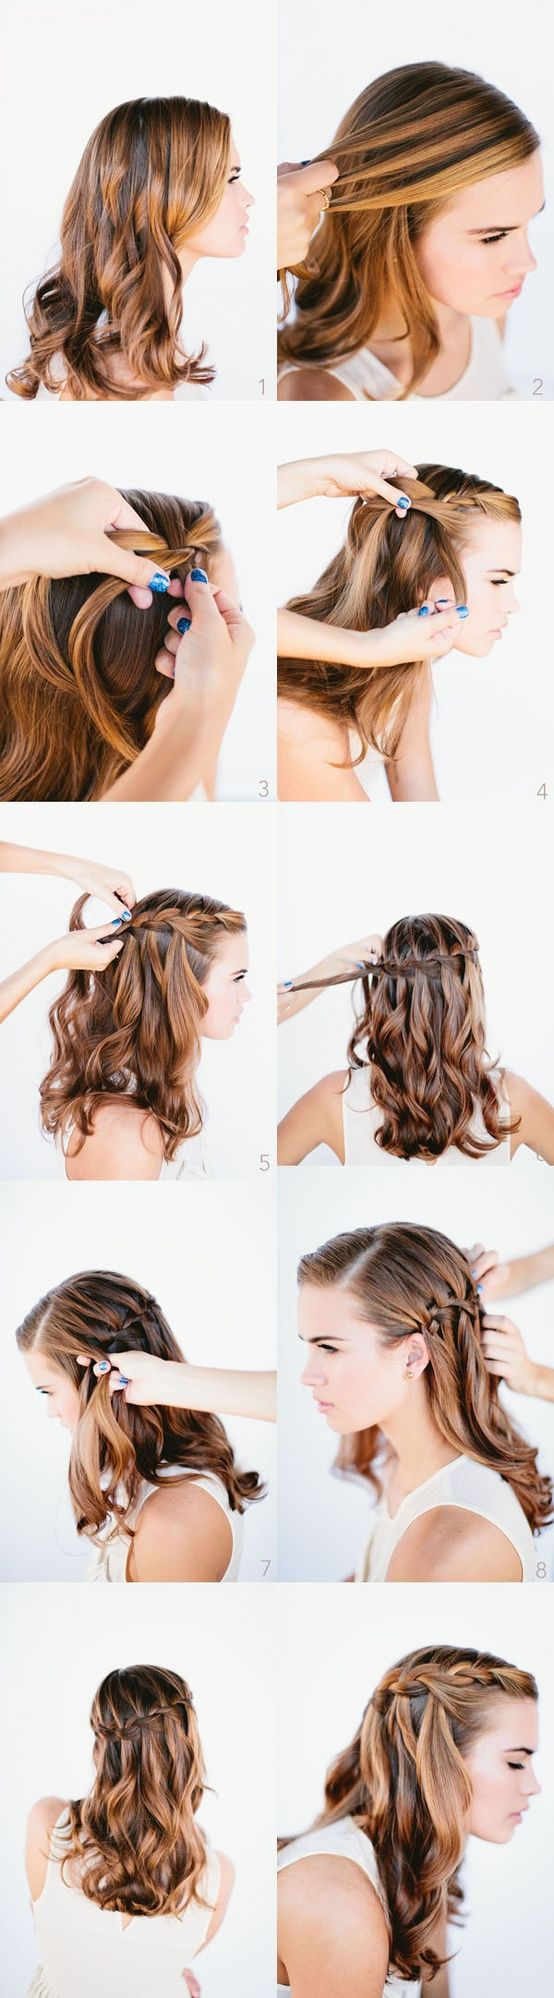 waterfall braid how to. I did this in my sister's hair and it looked amazing especially with her natural highlights. :)